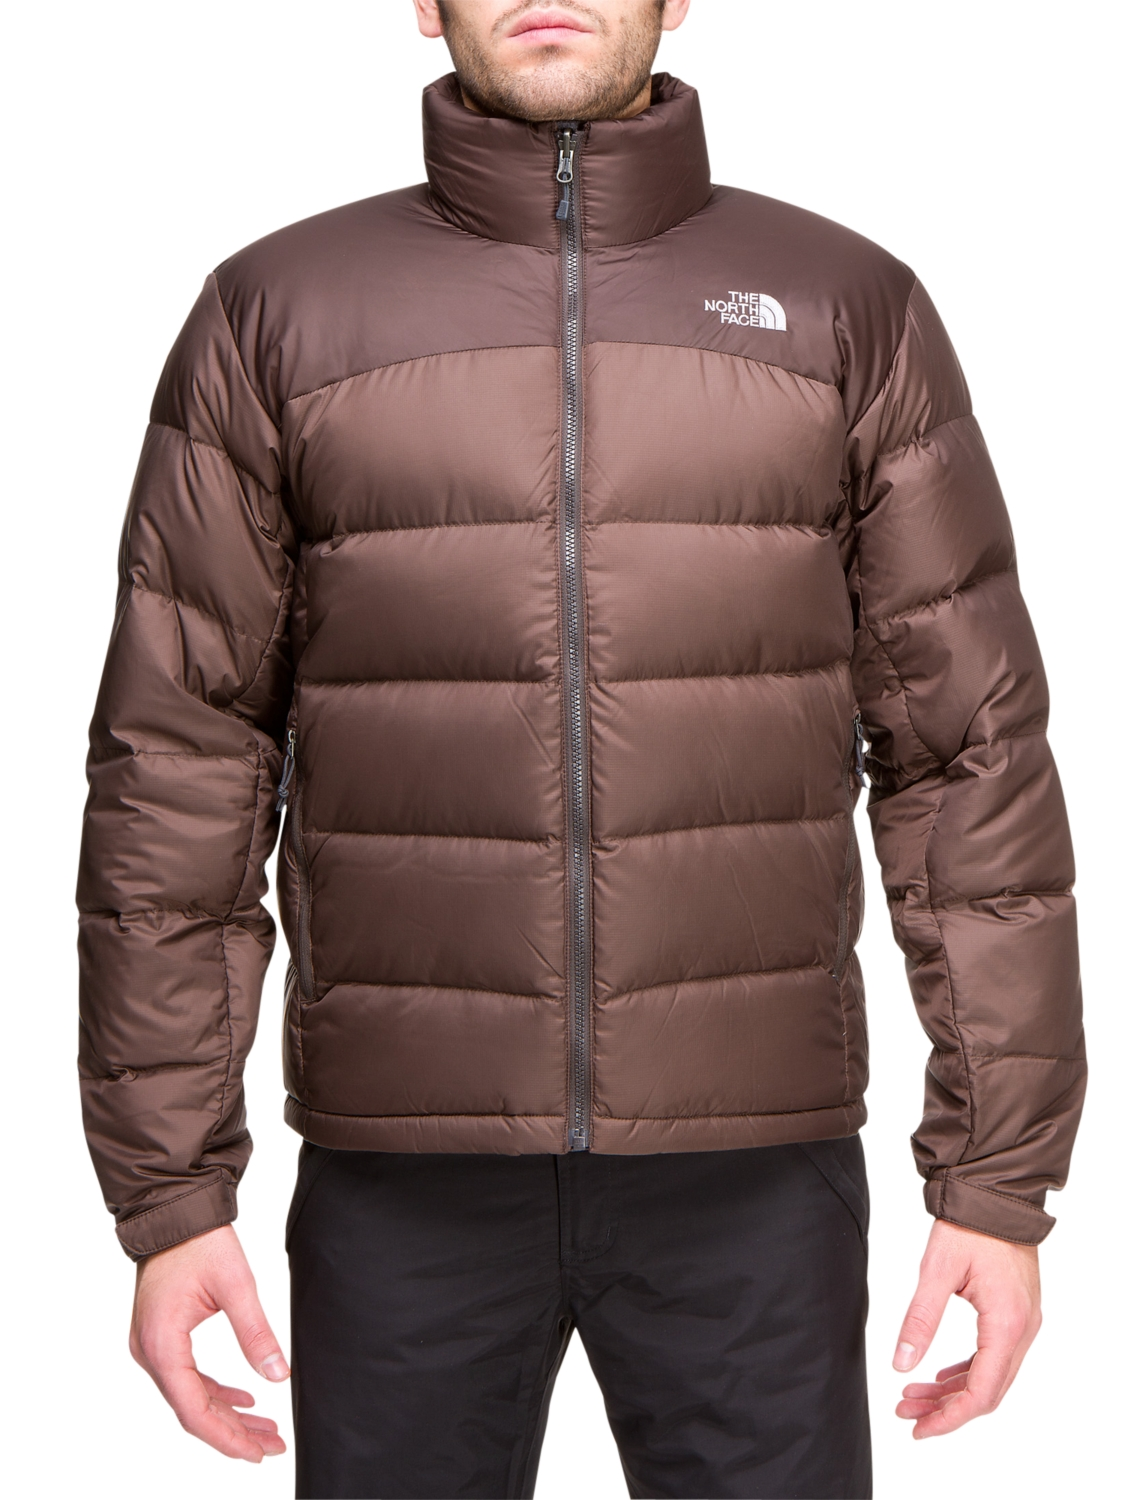 060052d5e The North Face The North Face Mens Nuptse 2 Jacket Bittersweet Brown ...